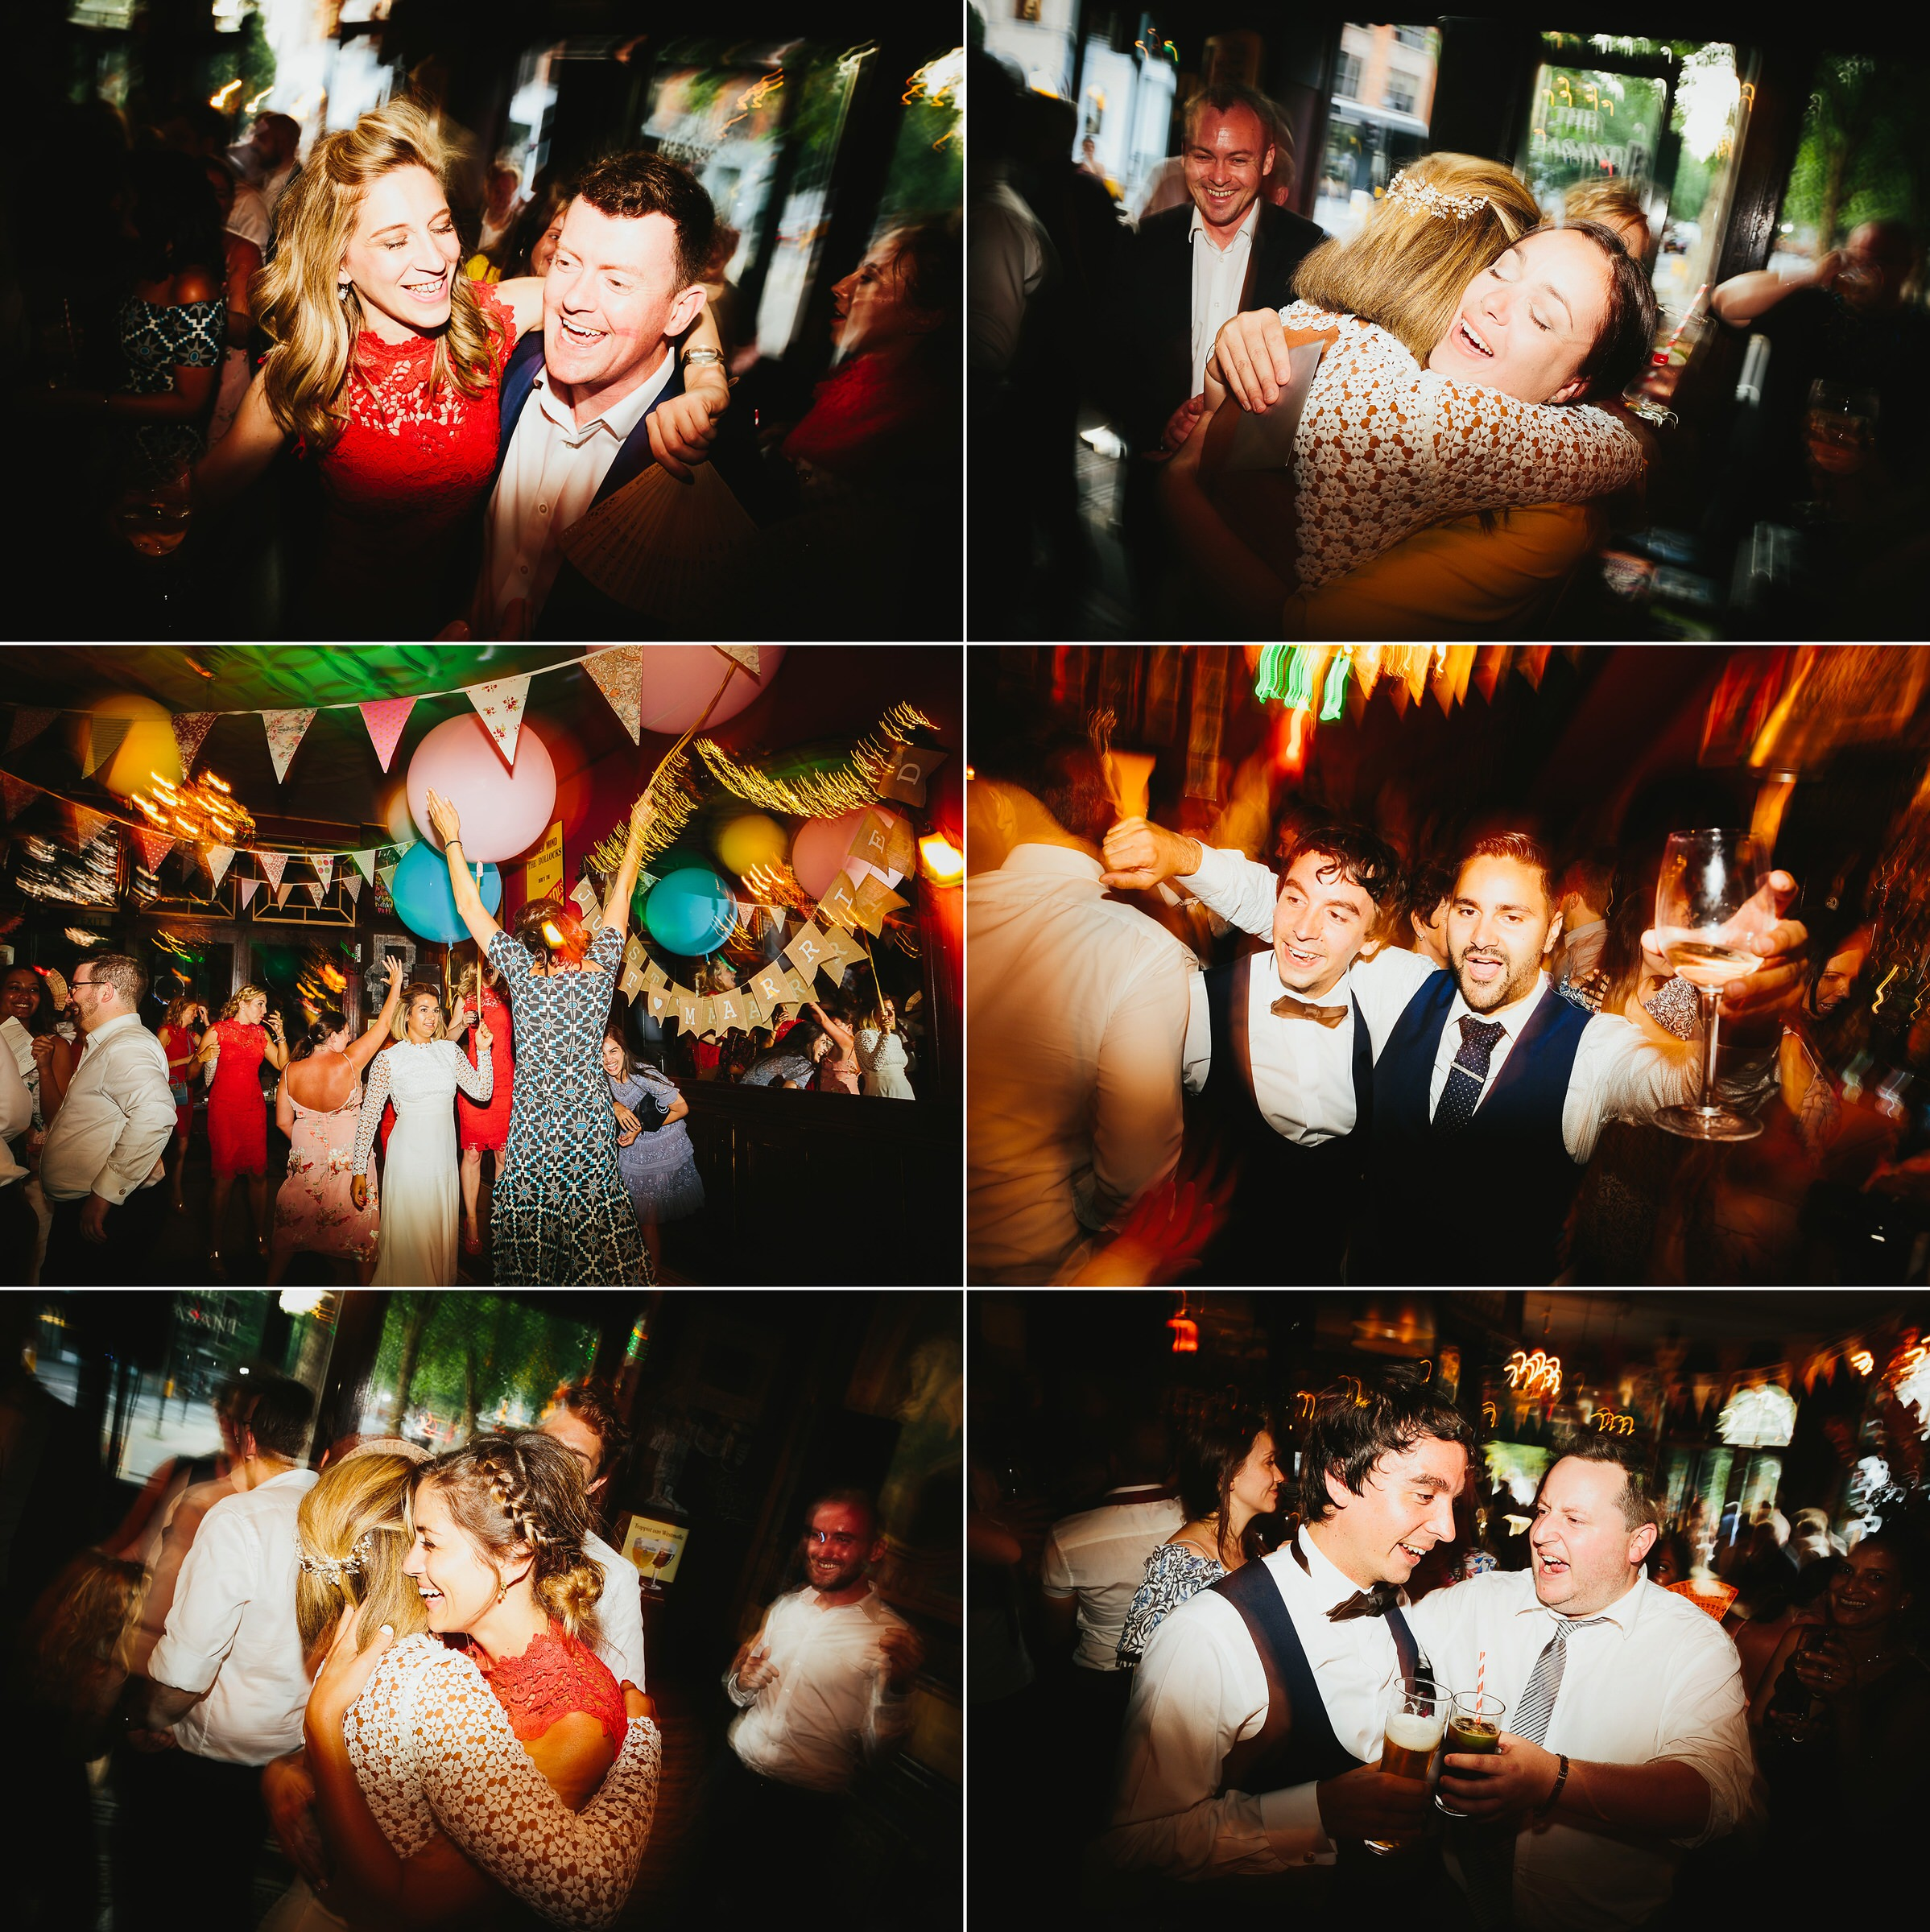 Peasant Pub wedding - Danielle & Patrick